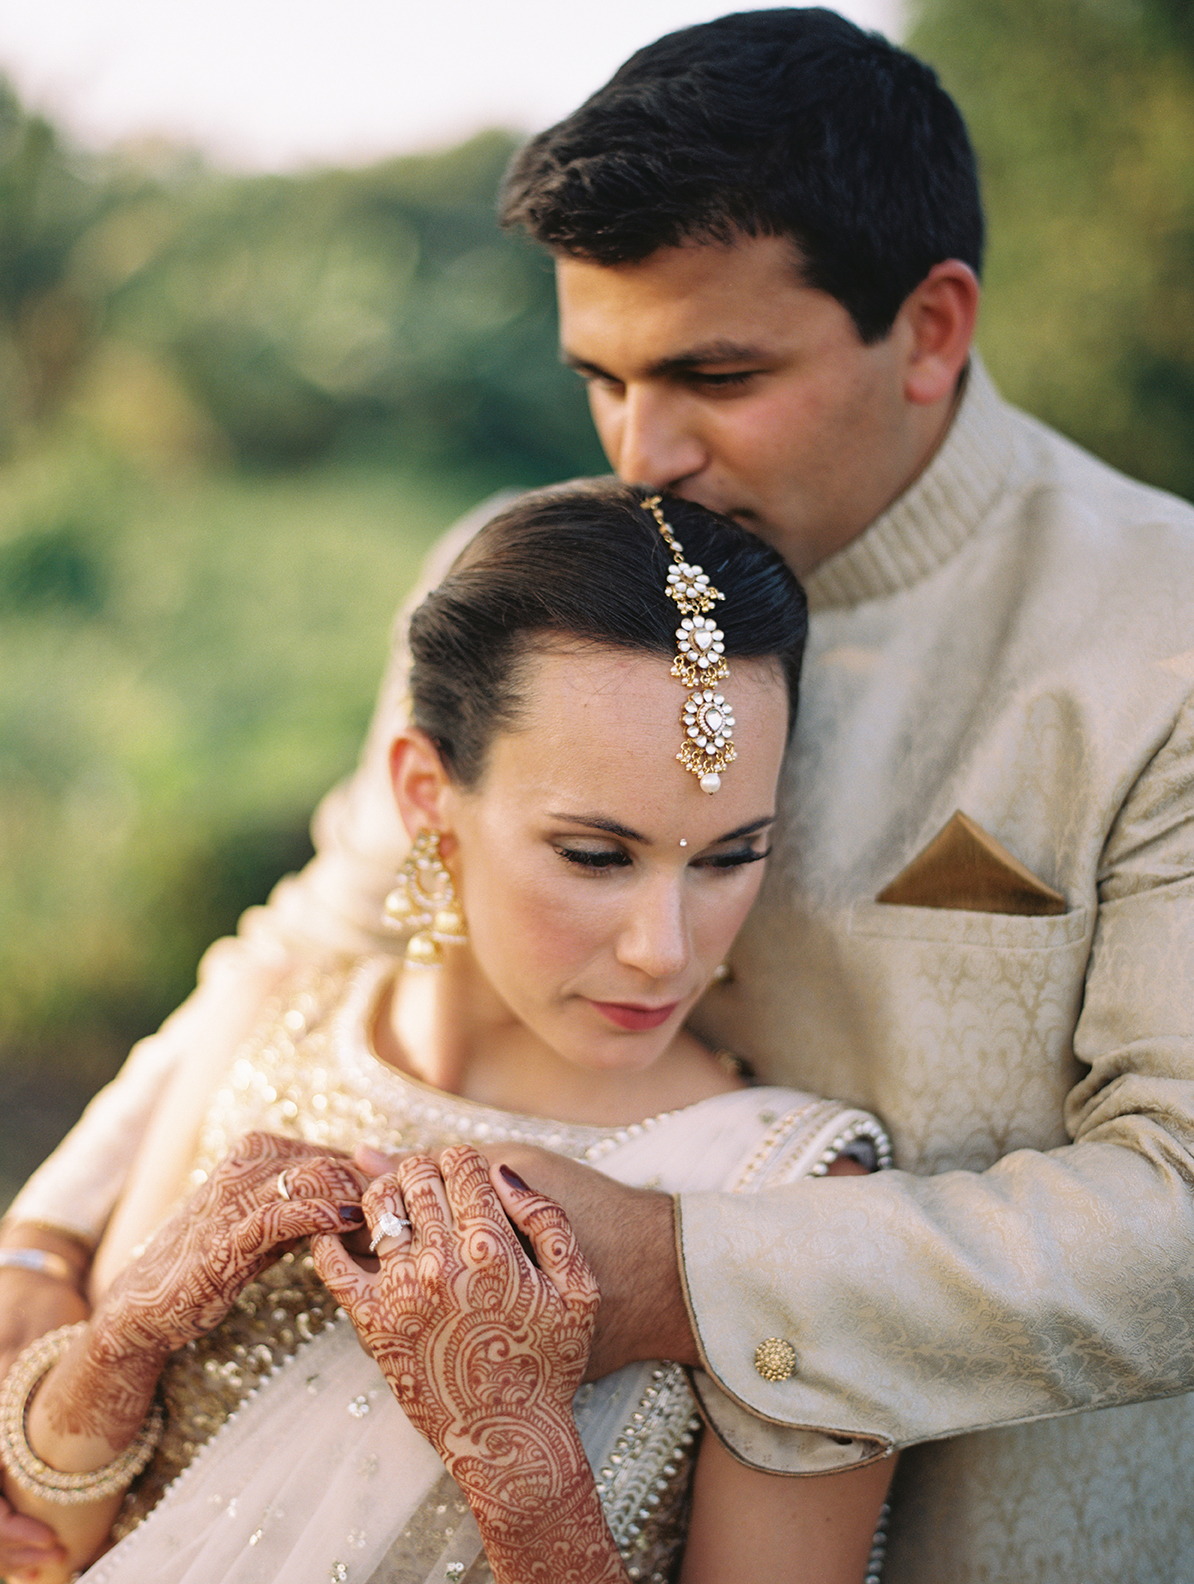 063-fine-art-film-photography-india-engagement-david-ali-brumley-wells.jpg